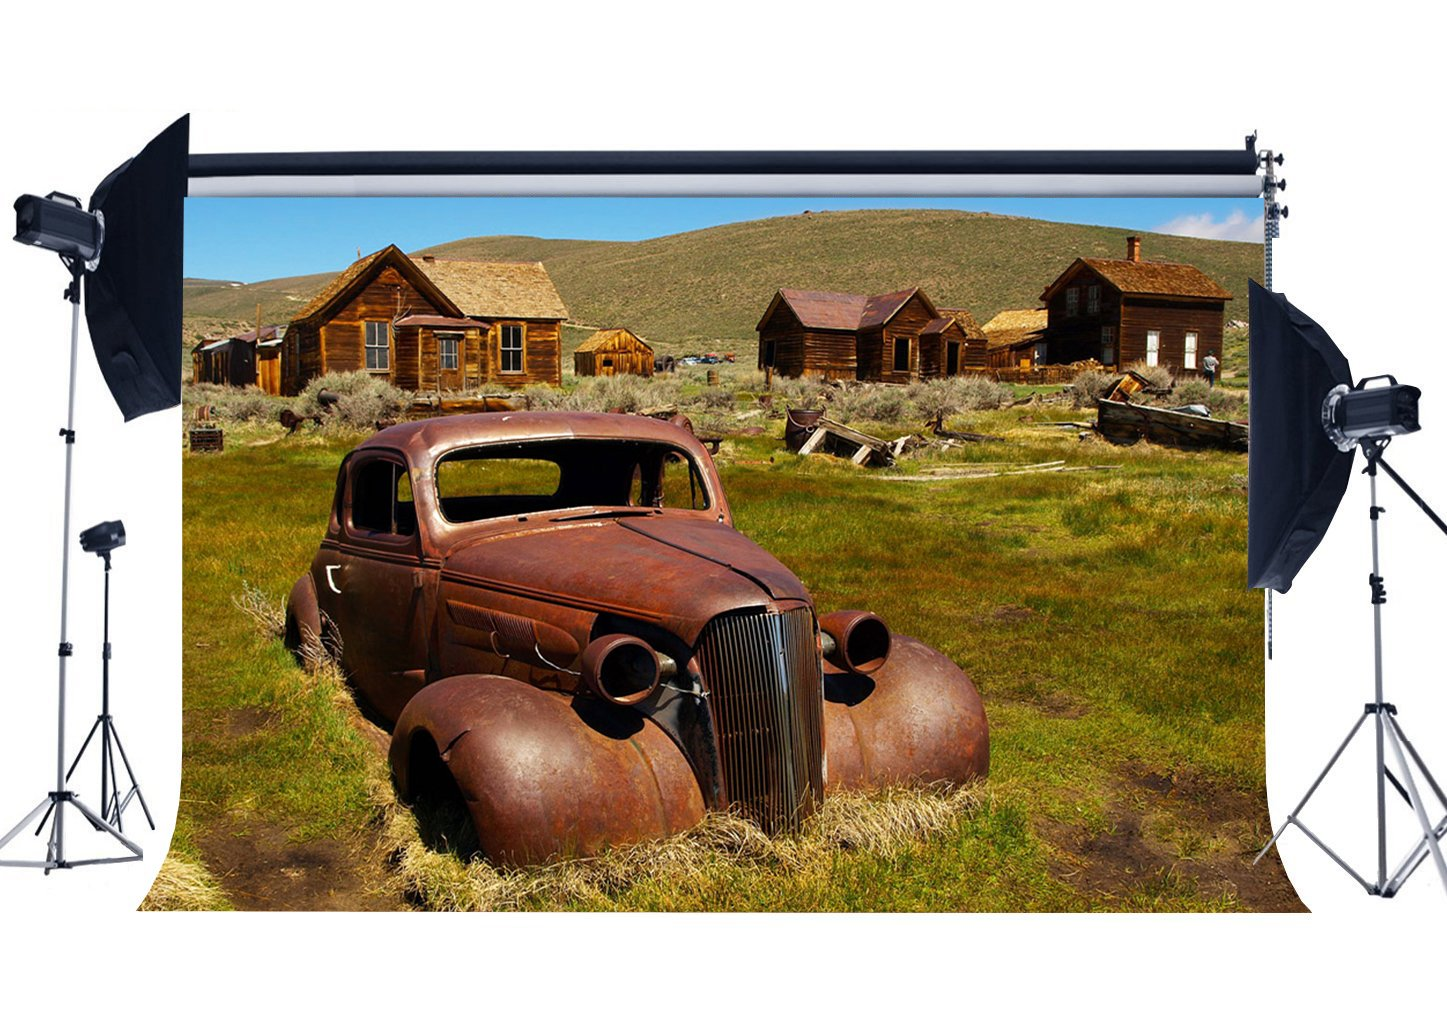 West Cowboy Backdrop Rural Old Wood House Backdrops Vintage Ruined Car Mountain Green Grass Meadow Background-in Photo Studio Accessories from Consumer Electronics